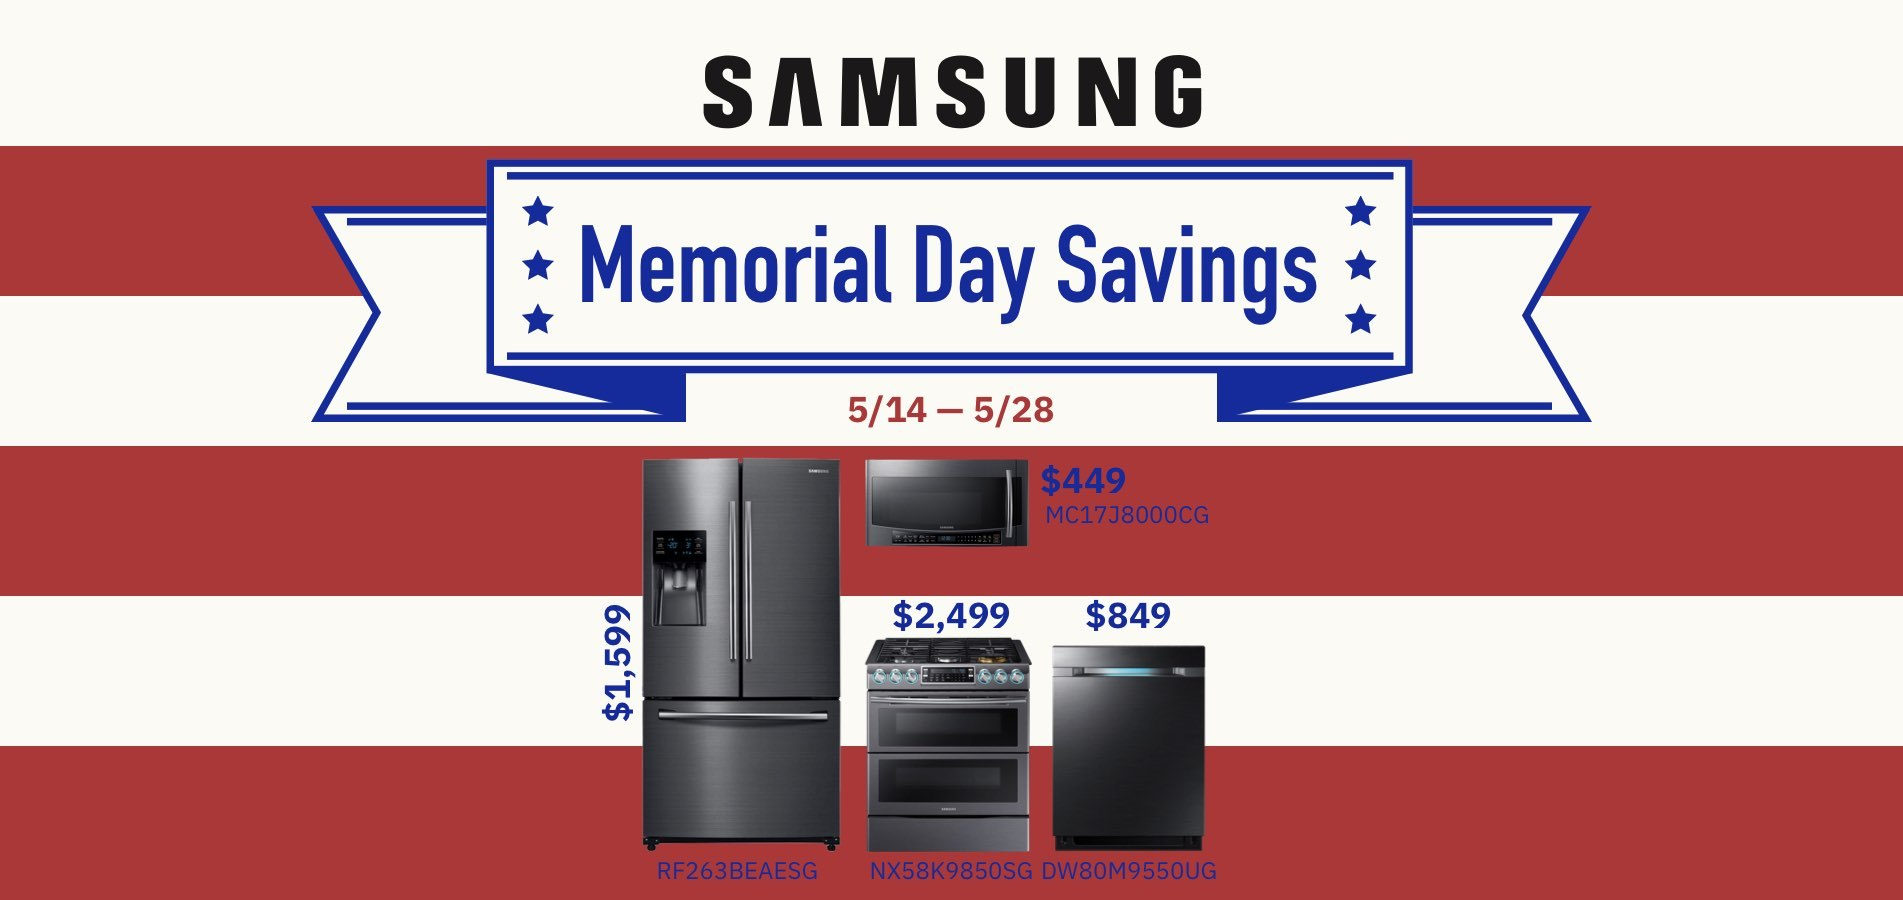 Samsung Memorial Day